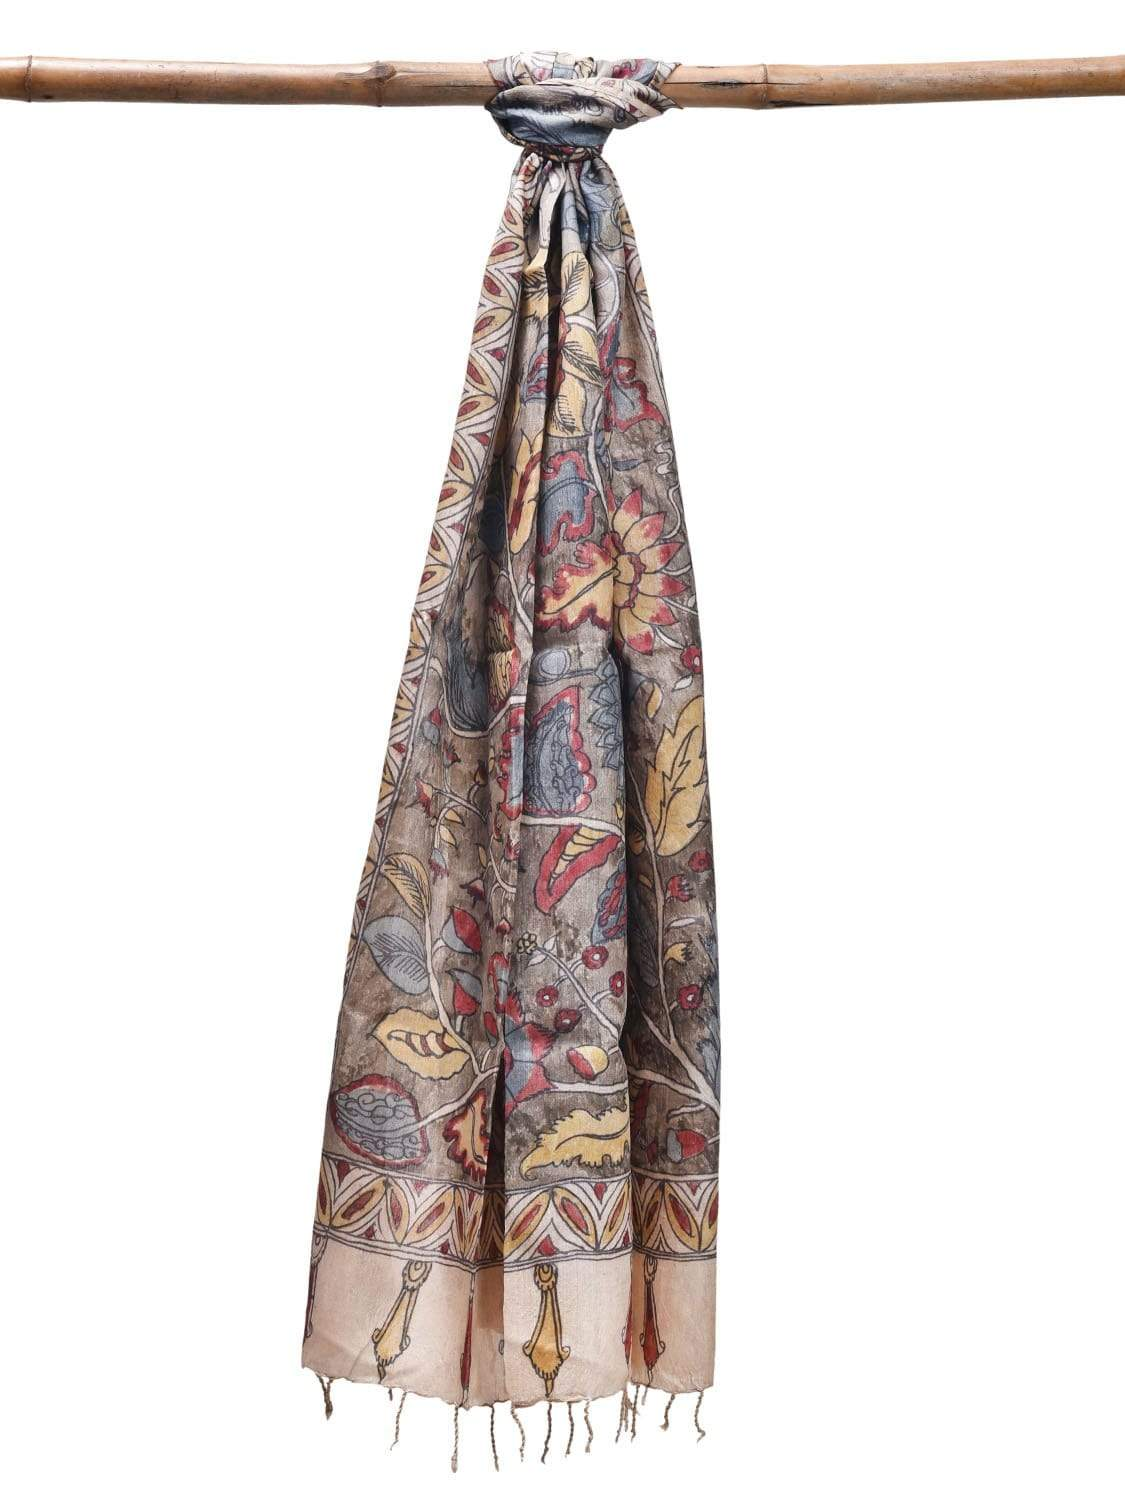 Multicolor Kalamkari Hand Painted Tussar Dupatta with Exotic Flowers Design ds1907